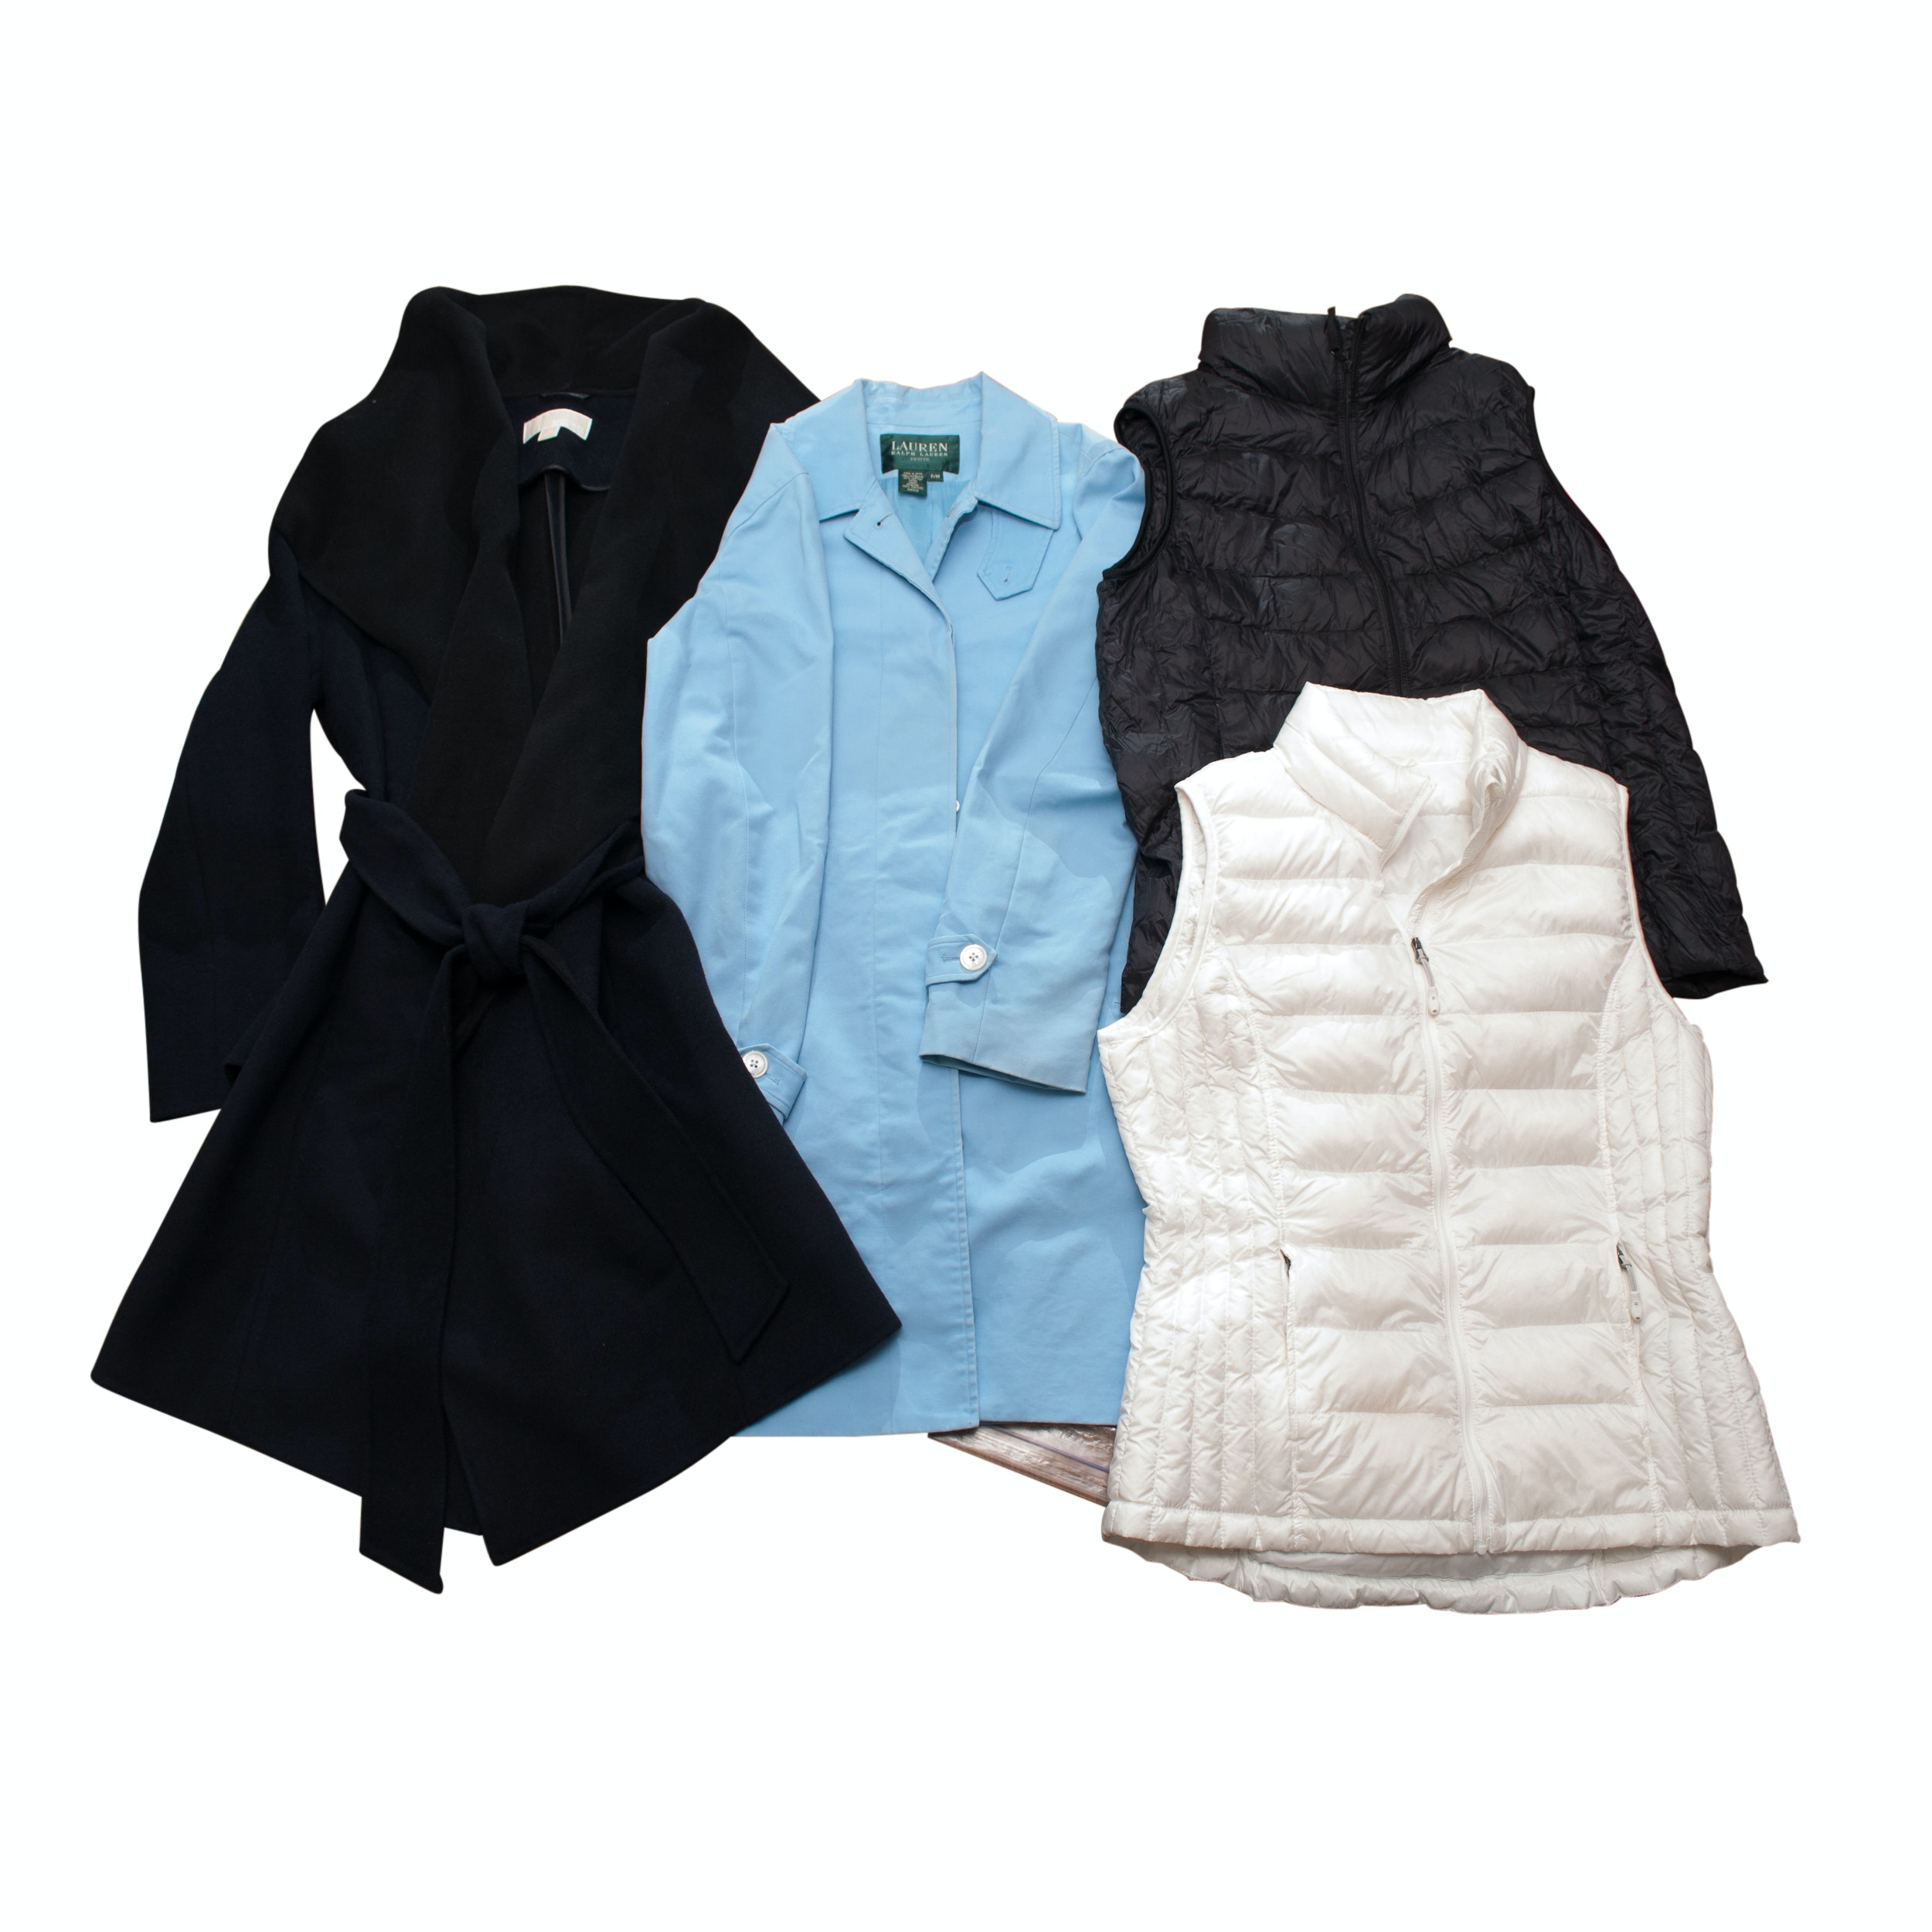 Contemporary Outerwear Including 32 Degrees, Uniqlo, Lauren, and Michael Kors